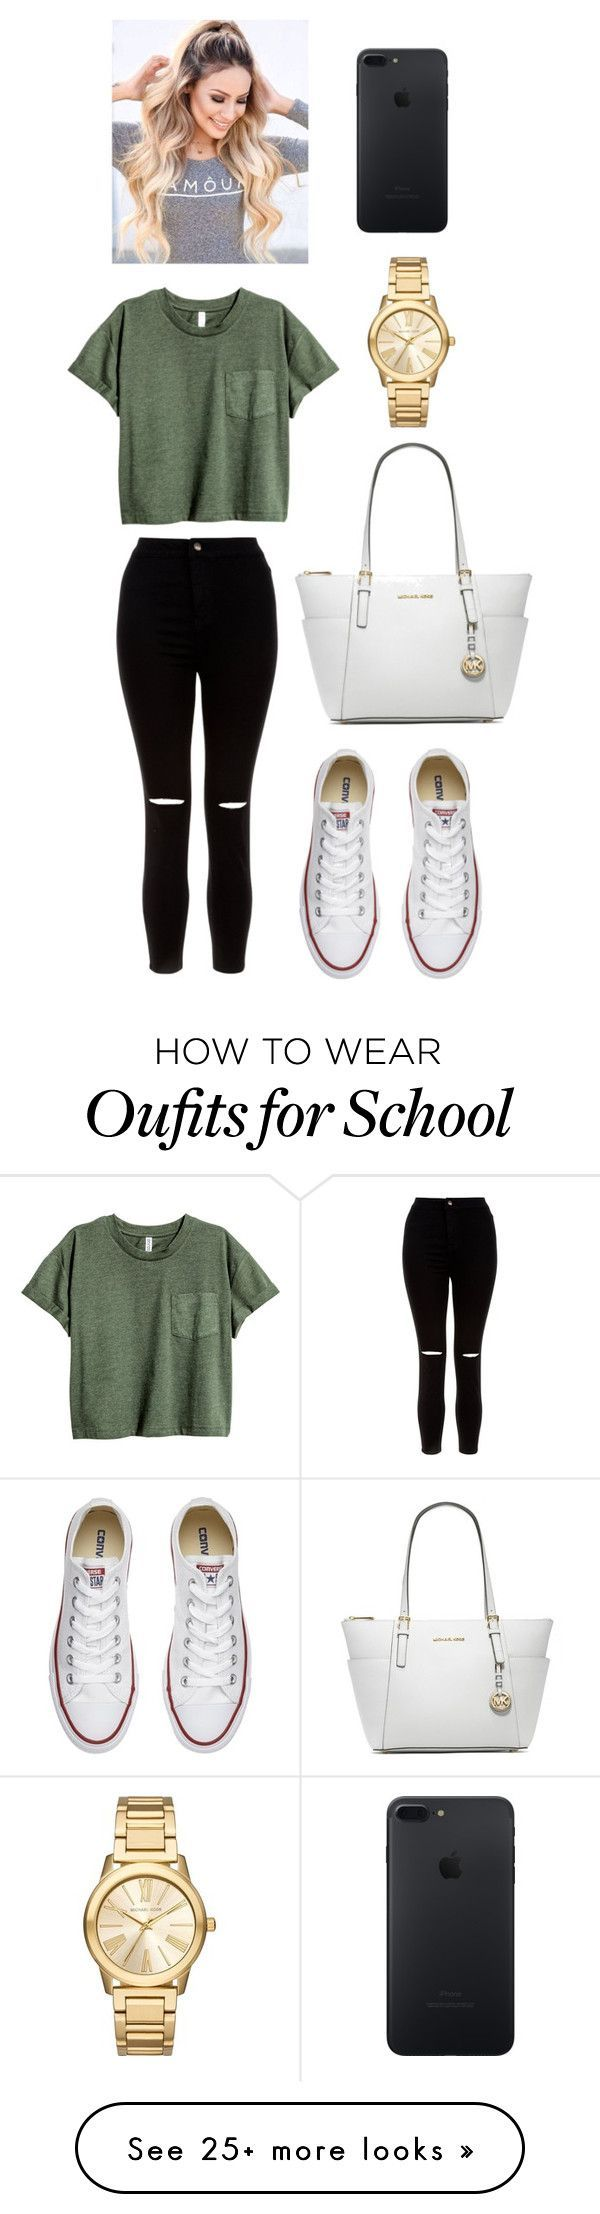 c652a684fcc School Outfit by jessica-cistrelli on Polyvore featuring New Look ...